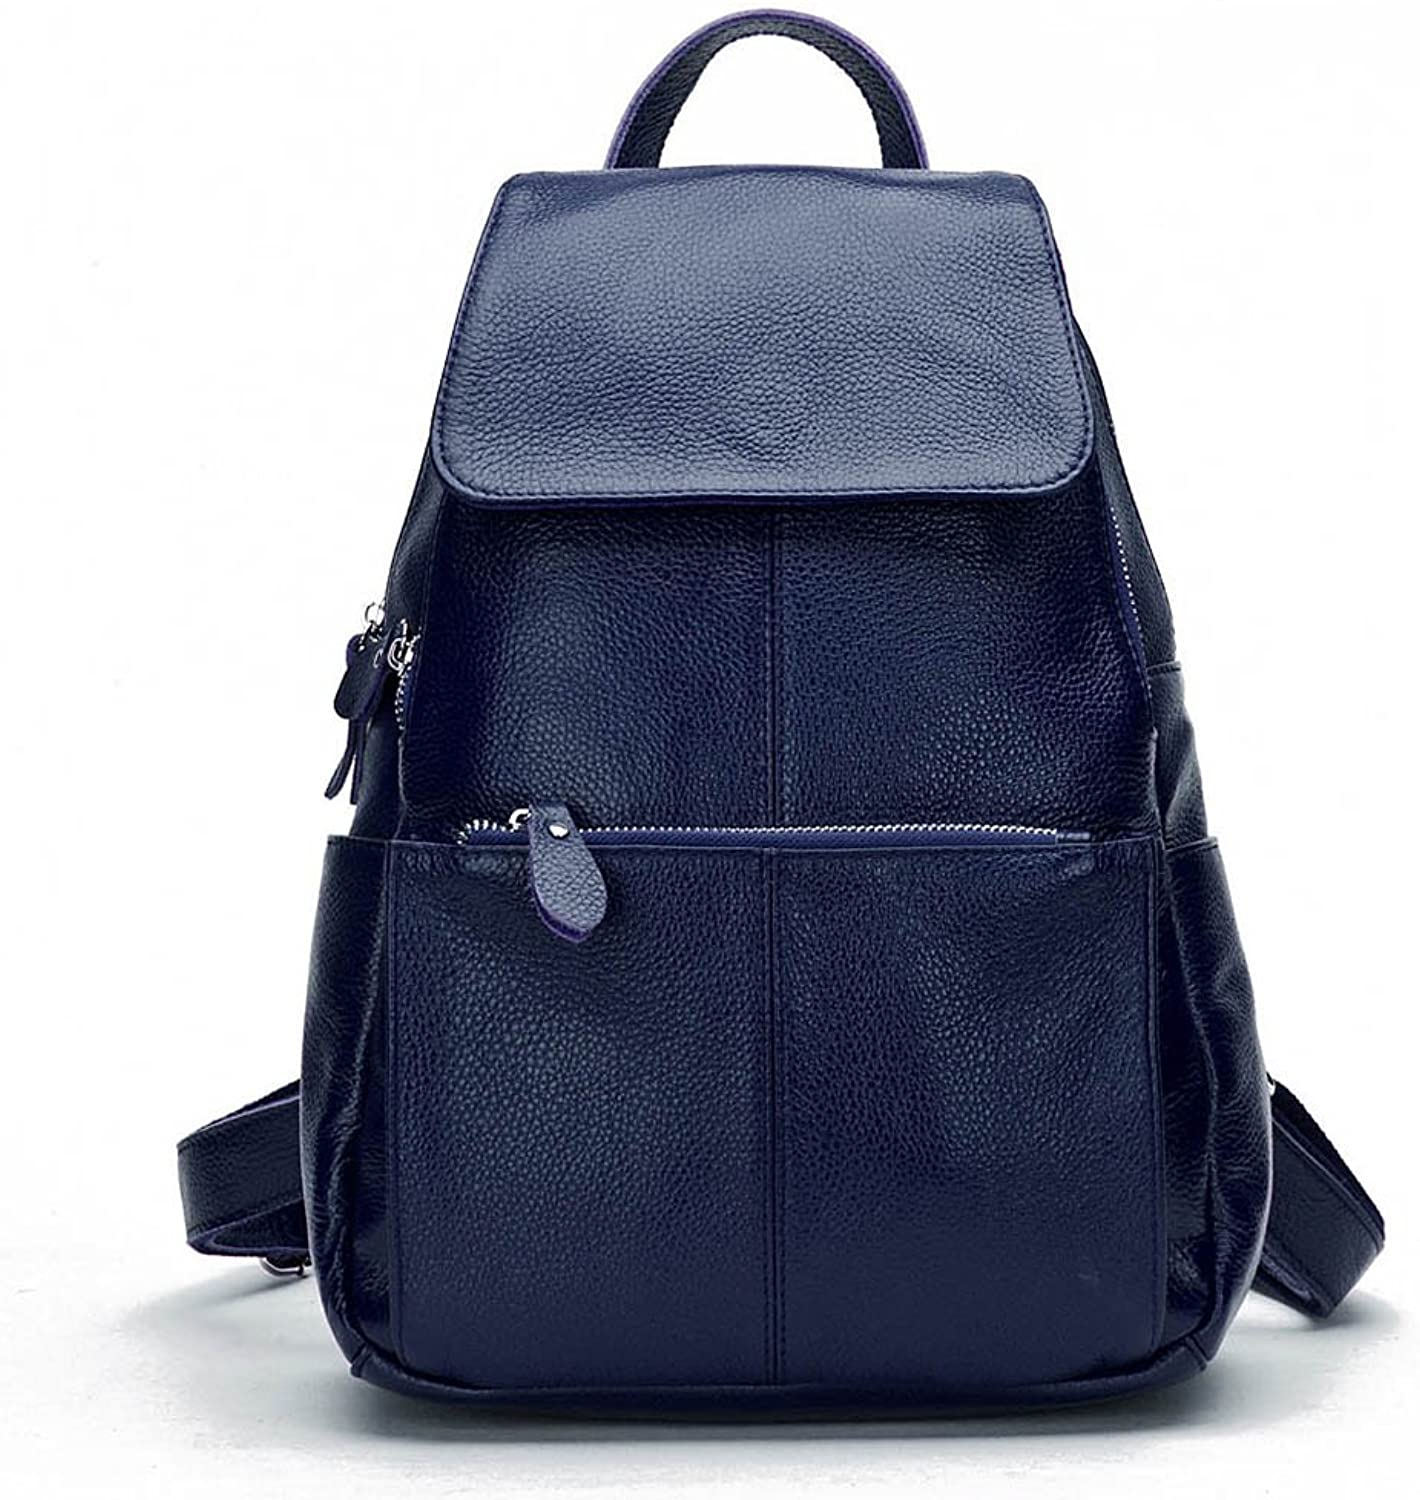 15 colors Real Soft Leather Women Backpack Fashion Ladies Travel Bag Preppy Style Schoolbags For Girls (Dark bluee)